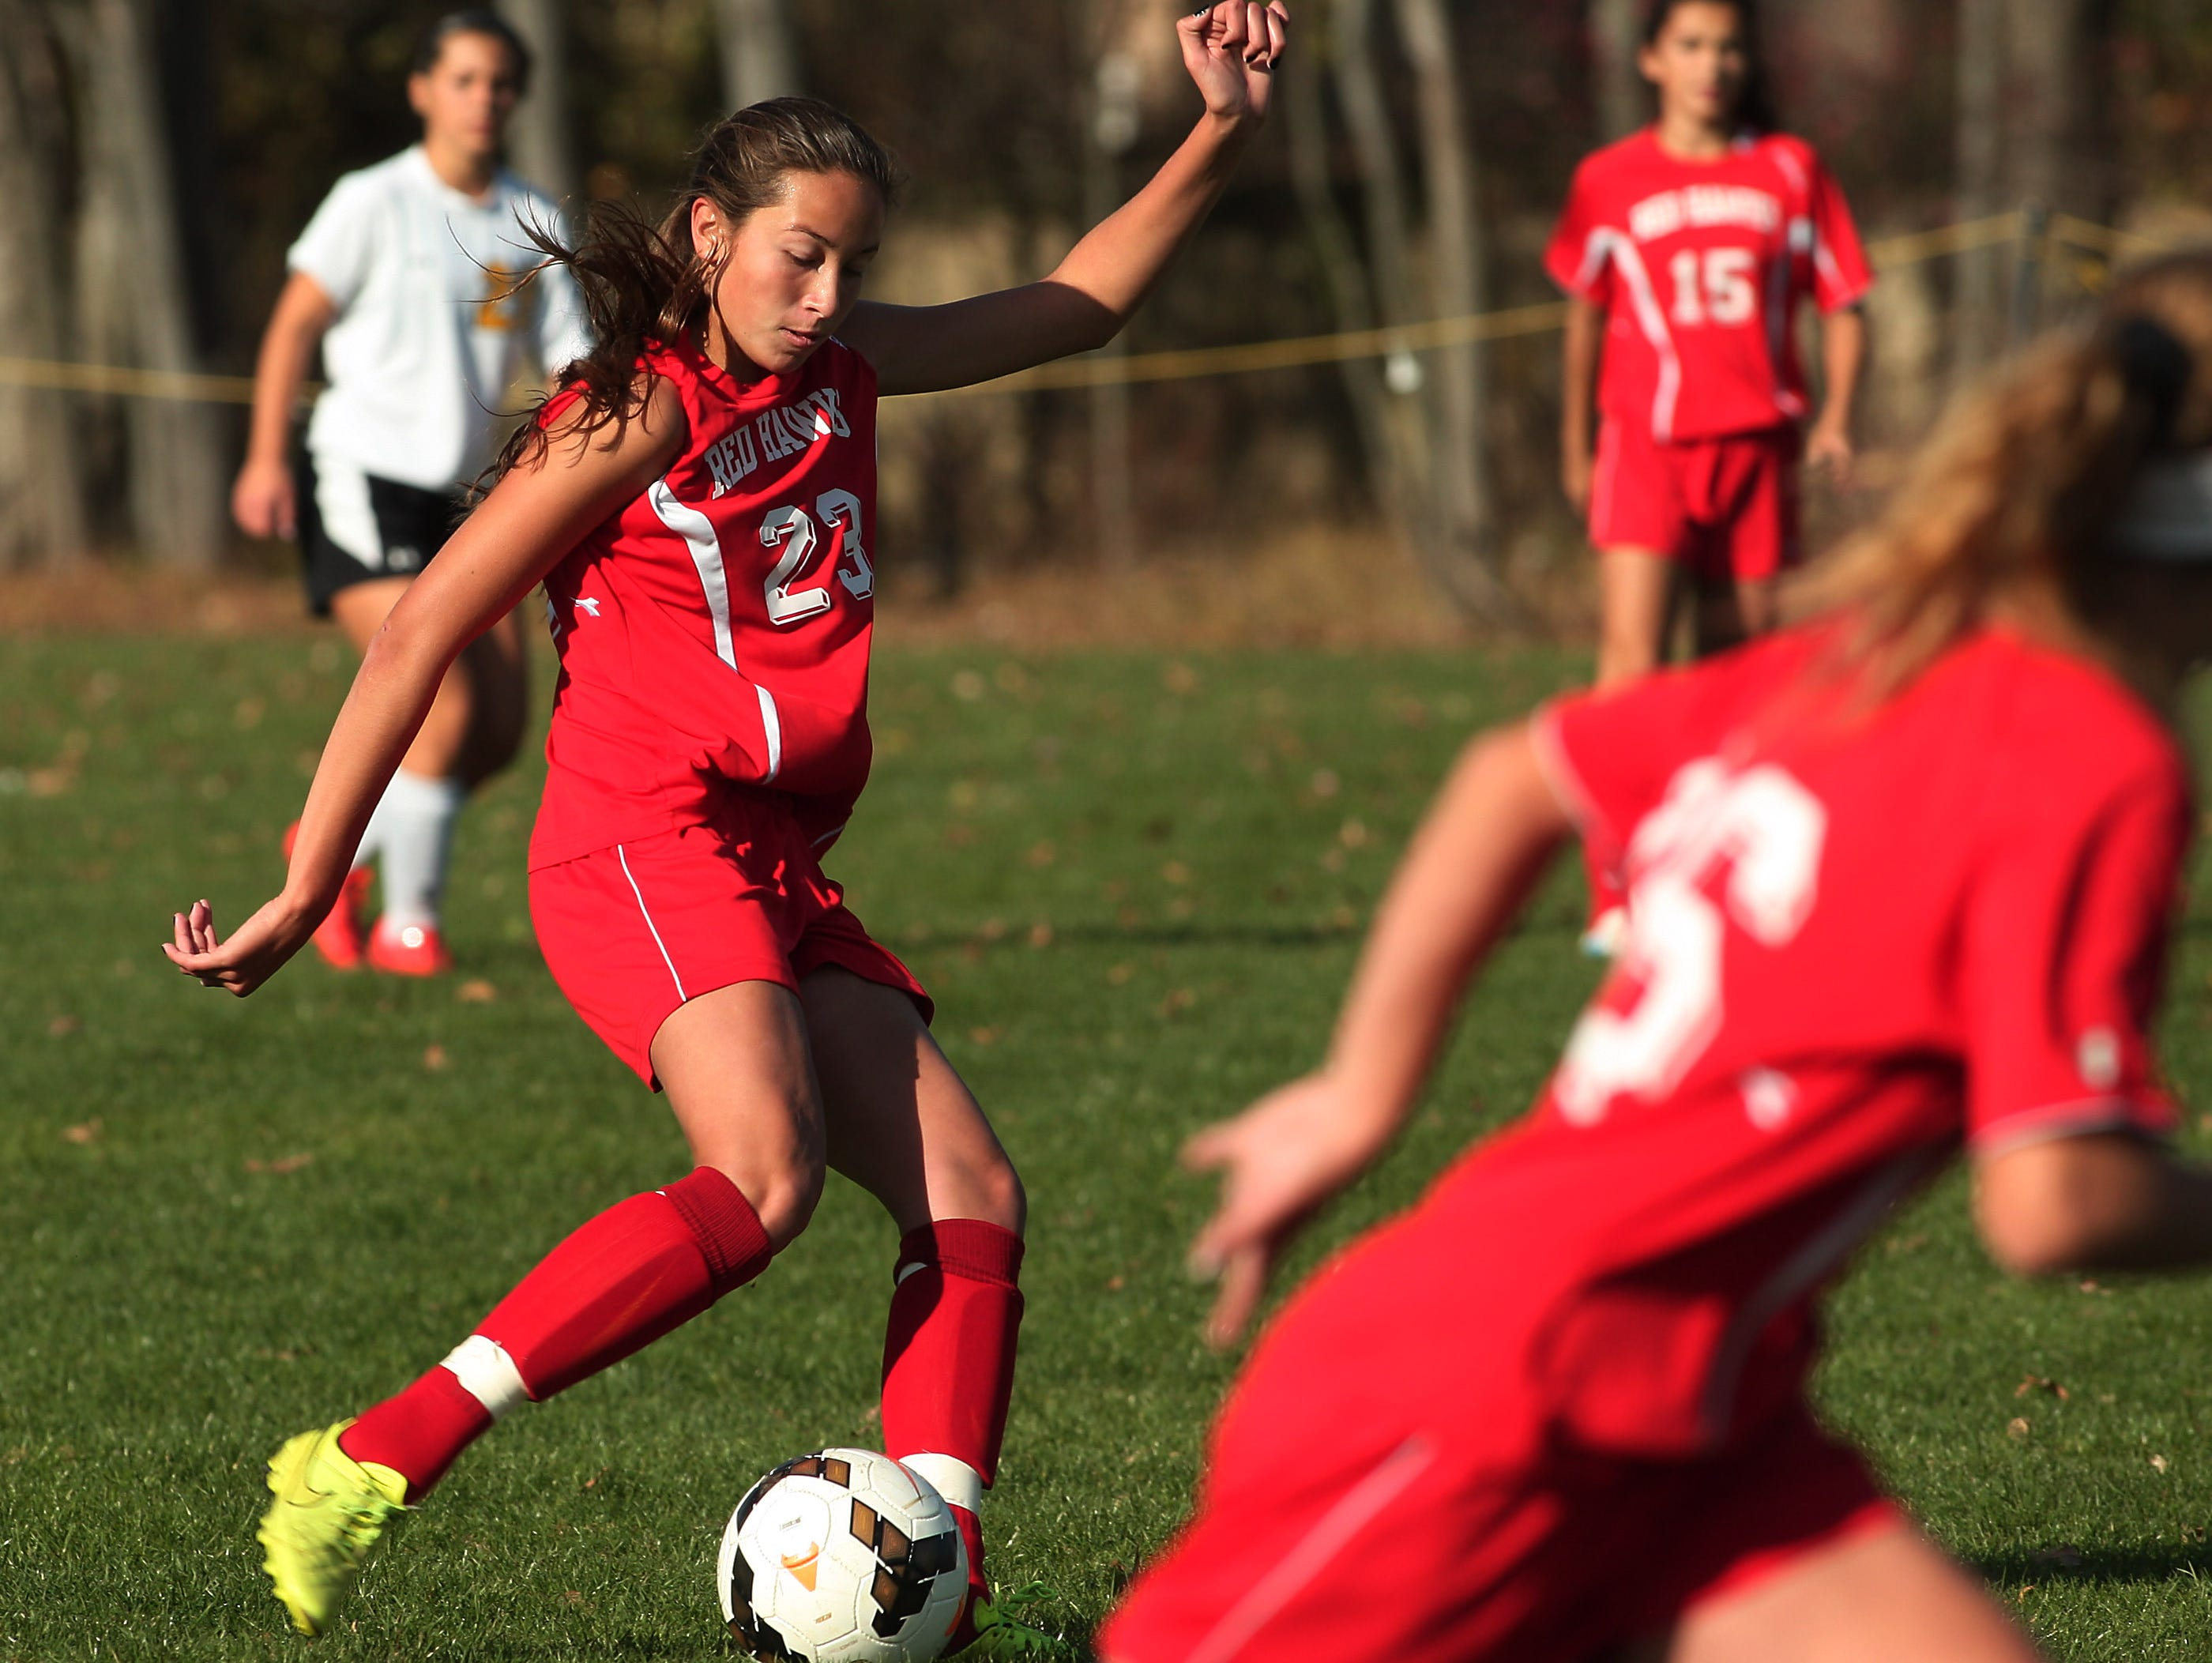 Parsippany's Haley Pignatelli scores in the first half vs Hanover Park in the first round of the North 2 Group II girls soccer matchup last November.